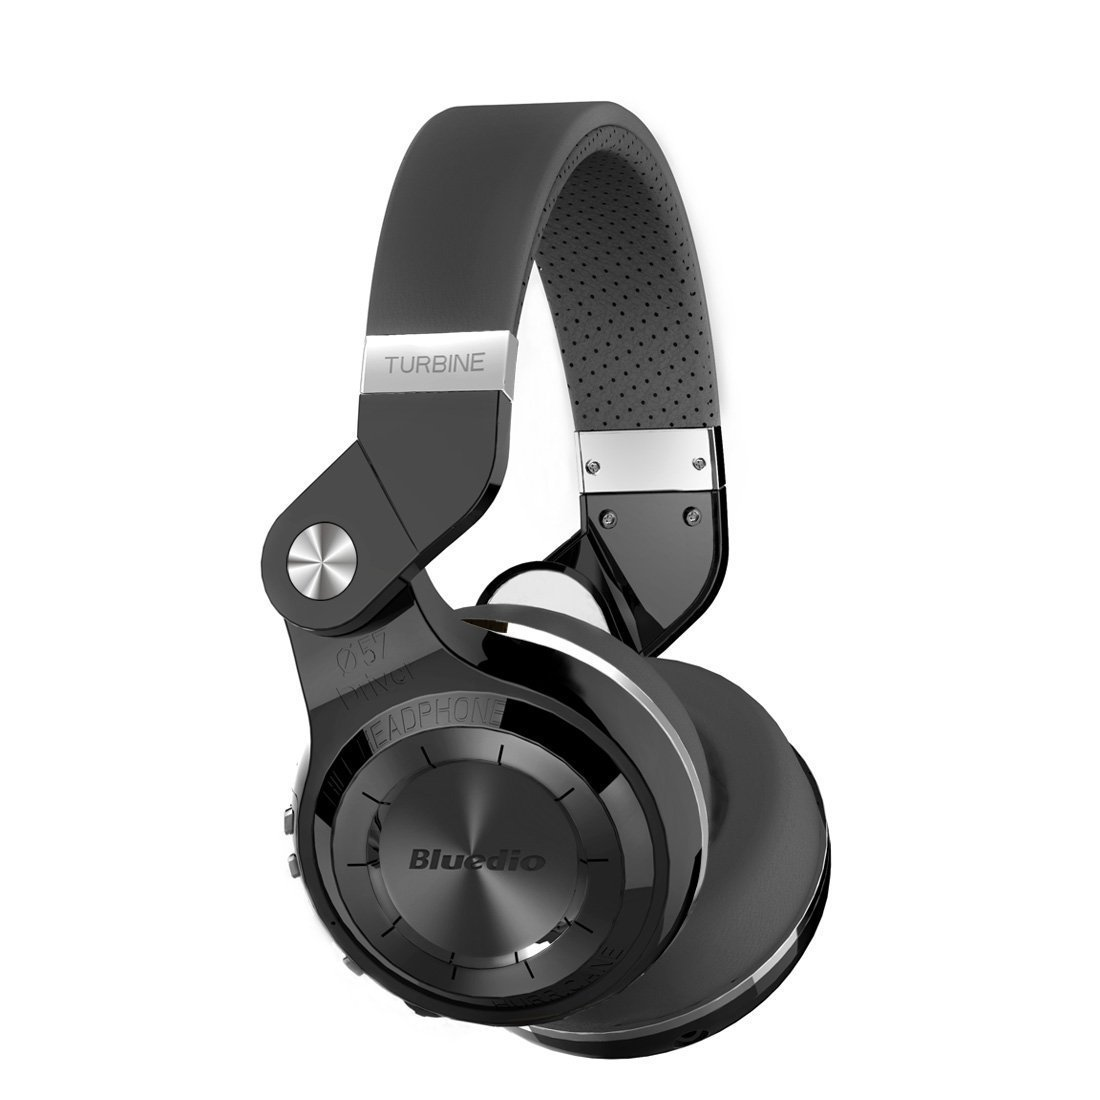 Bluedio T2S (Turbine 2 Shooting Brake), cuffie stereo wireless con Bluetooth 4.1, sovraurali